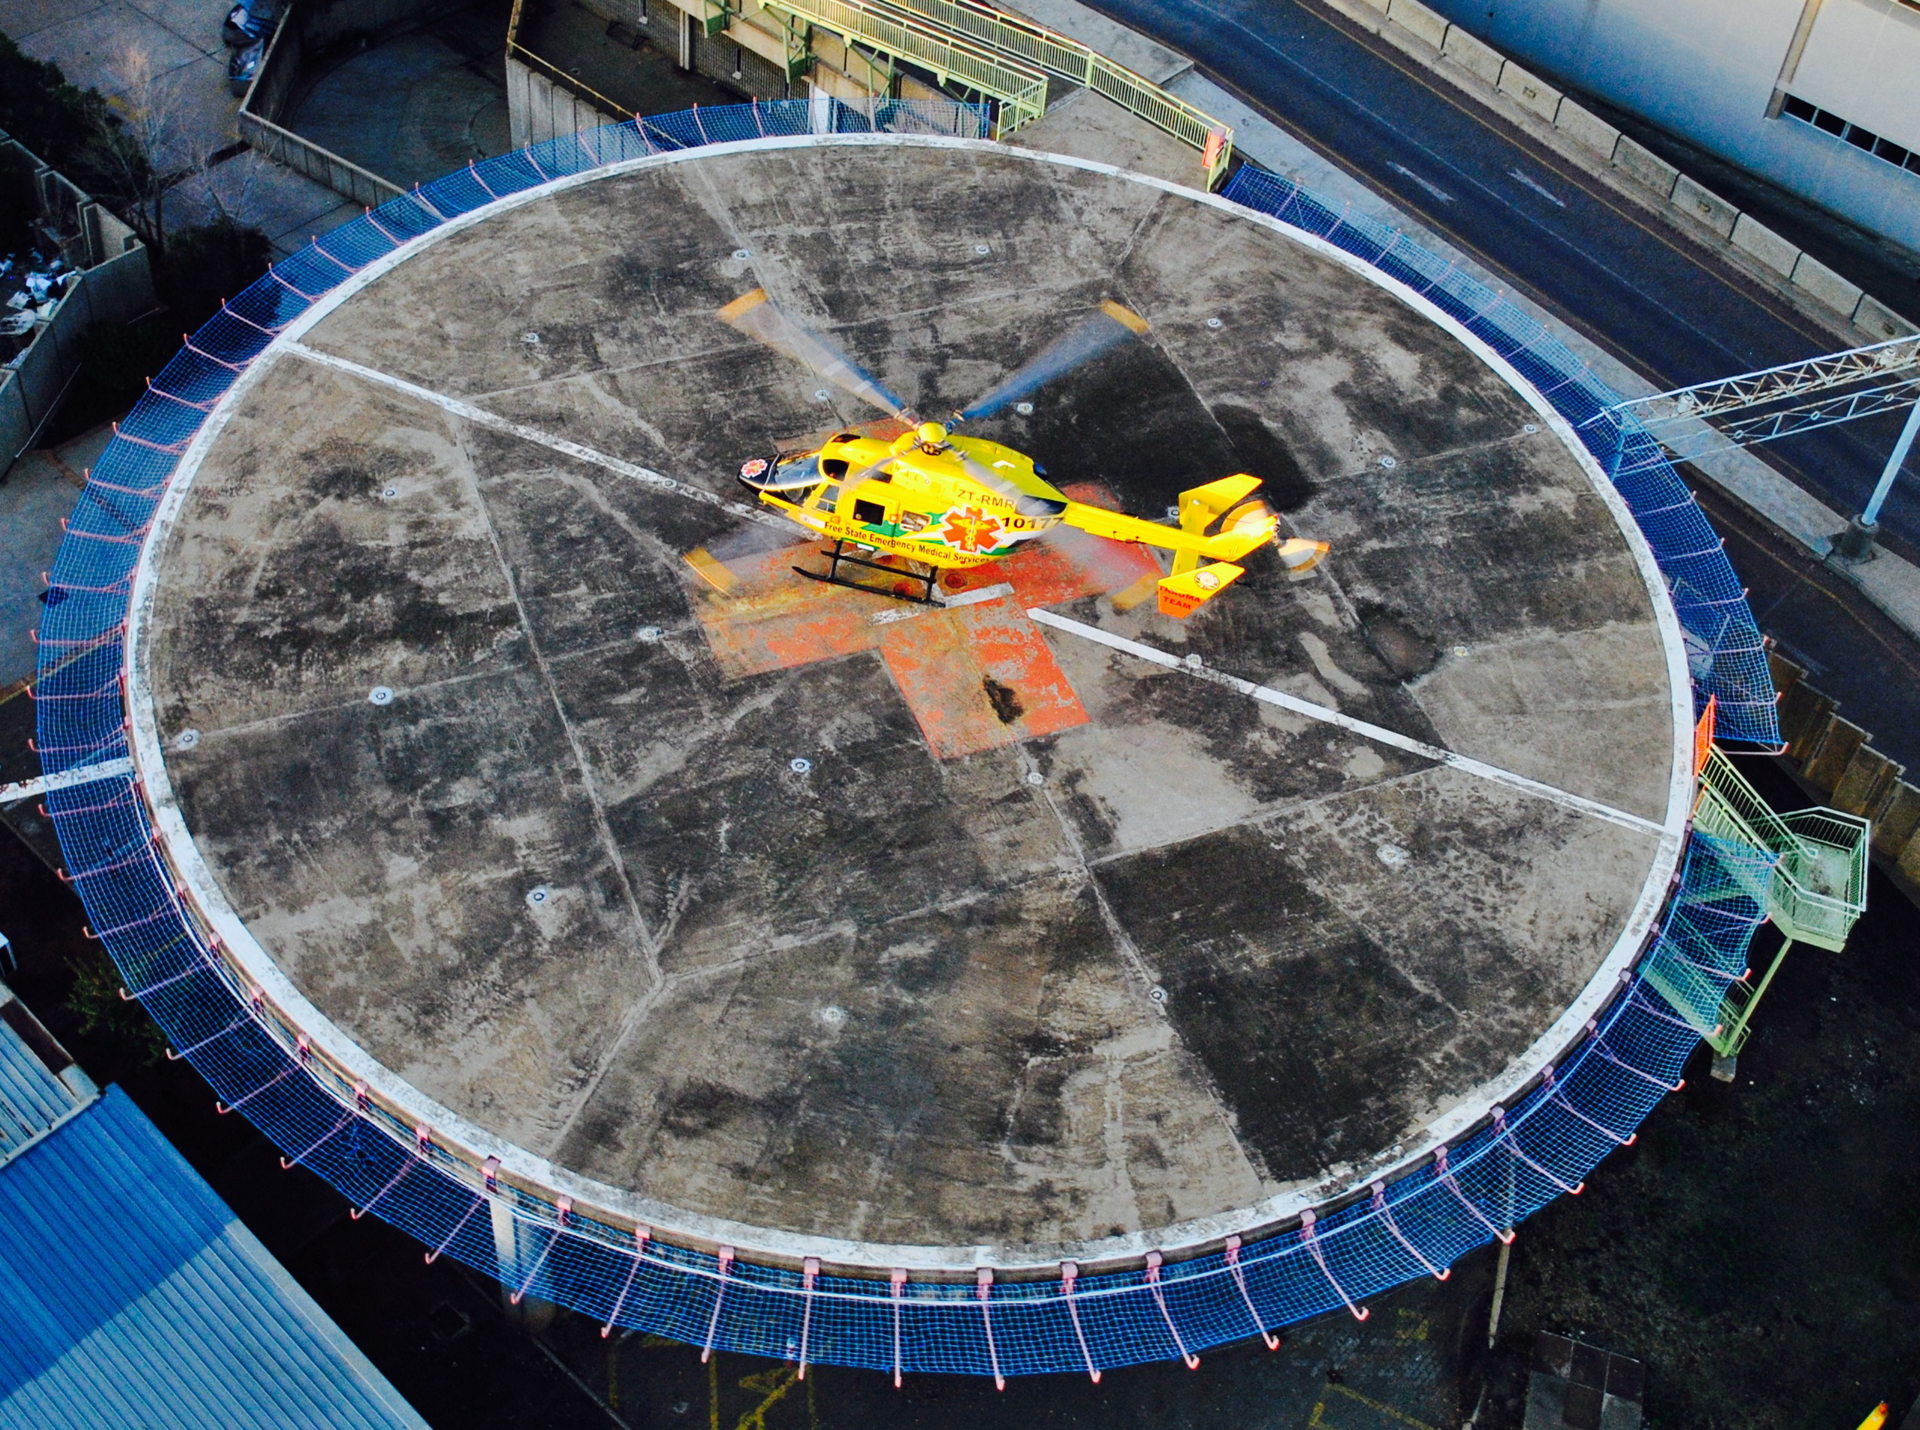 South Africa went into lockdown on 26 March, which effectively shut down the country with the exclusion of essential services. HALO Aviation, a HEMS operator based in South Africa, was the only operator in the country to have several aerial platforms configured to accommodate a complete patient isolation module.